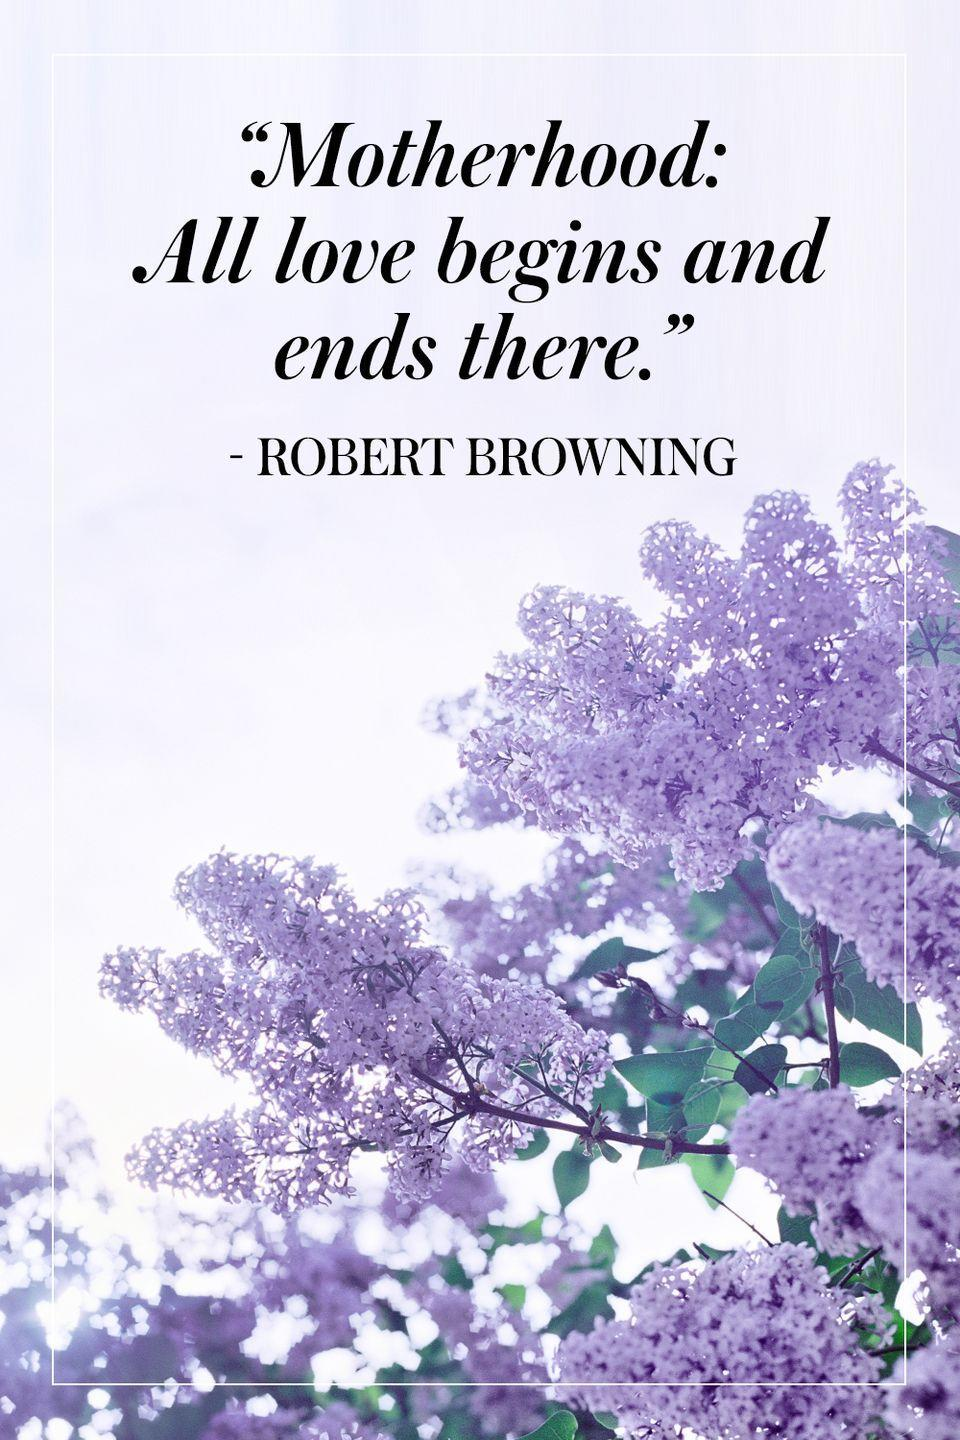 """<p>""""Motherhood: All love begins and ends there.""""</p><p>- Robert Browning</p>"""